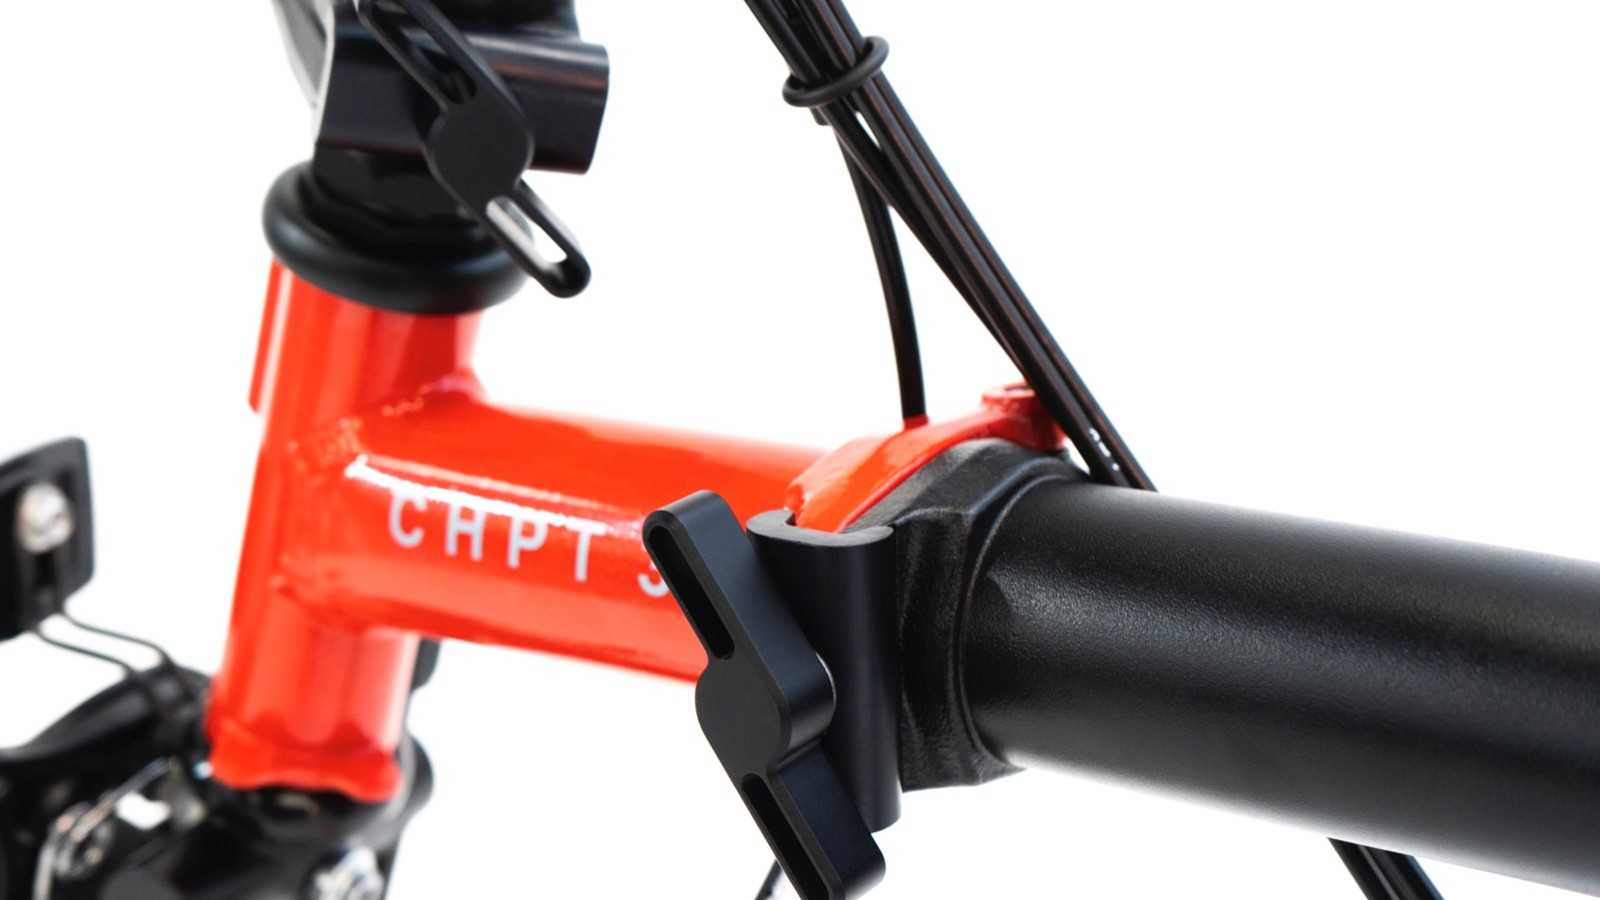 The X CHPT3 is the first Brompton to have machined hinges and seat clamps